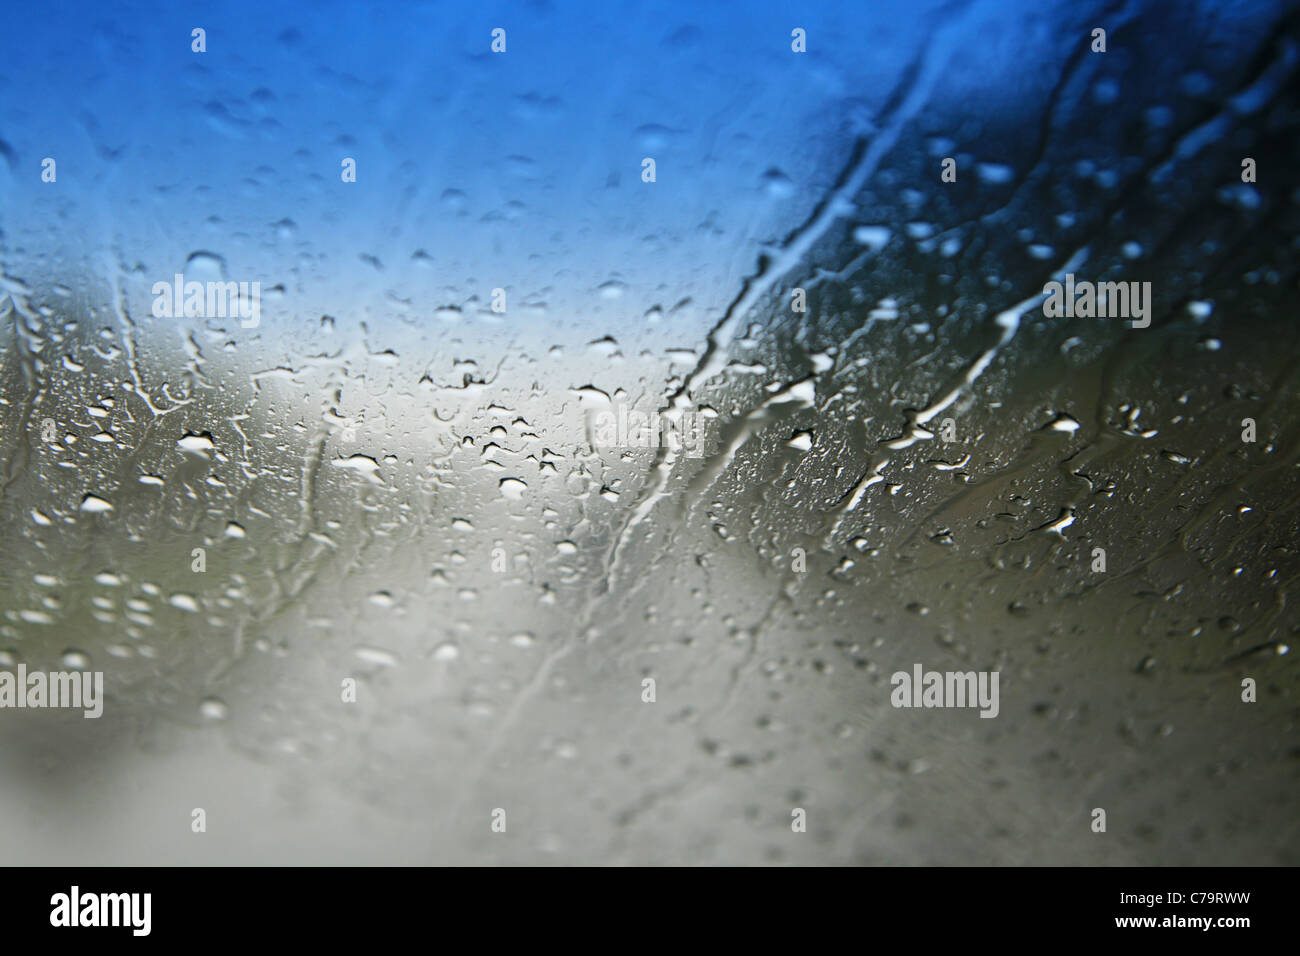 view through a wet car windshield with shallow depth of field and focus on the water drops - Stock Image